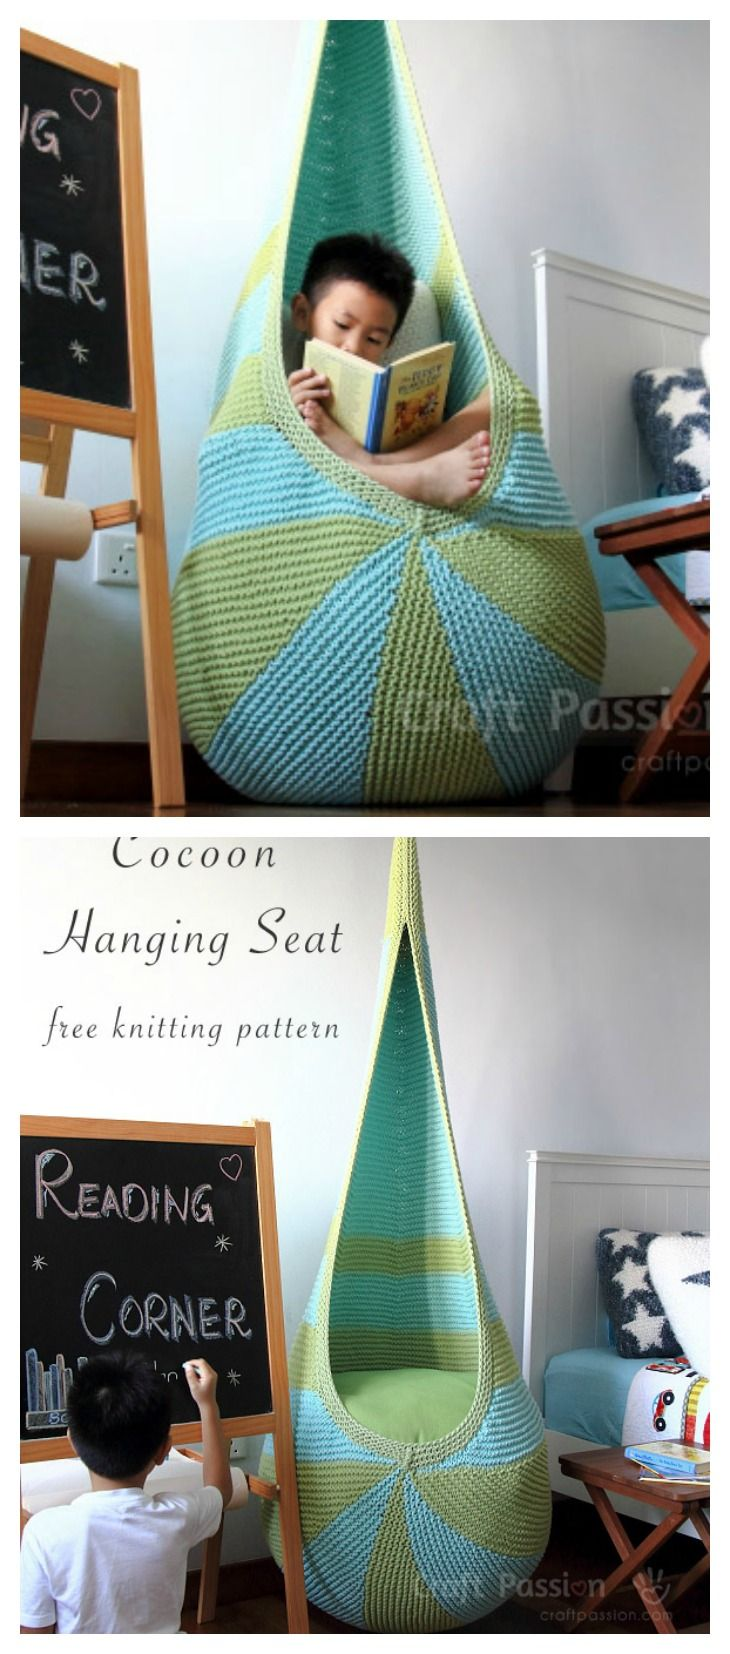 How to #Knitting a Cocoon Hanging Seat with Free #Pattern! This is too cool! You can hang it at kid's room, and put some books aside, I think your kids will love this place.